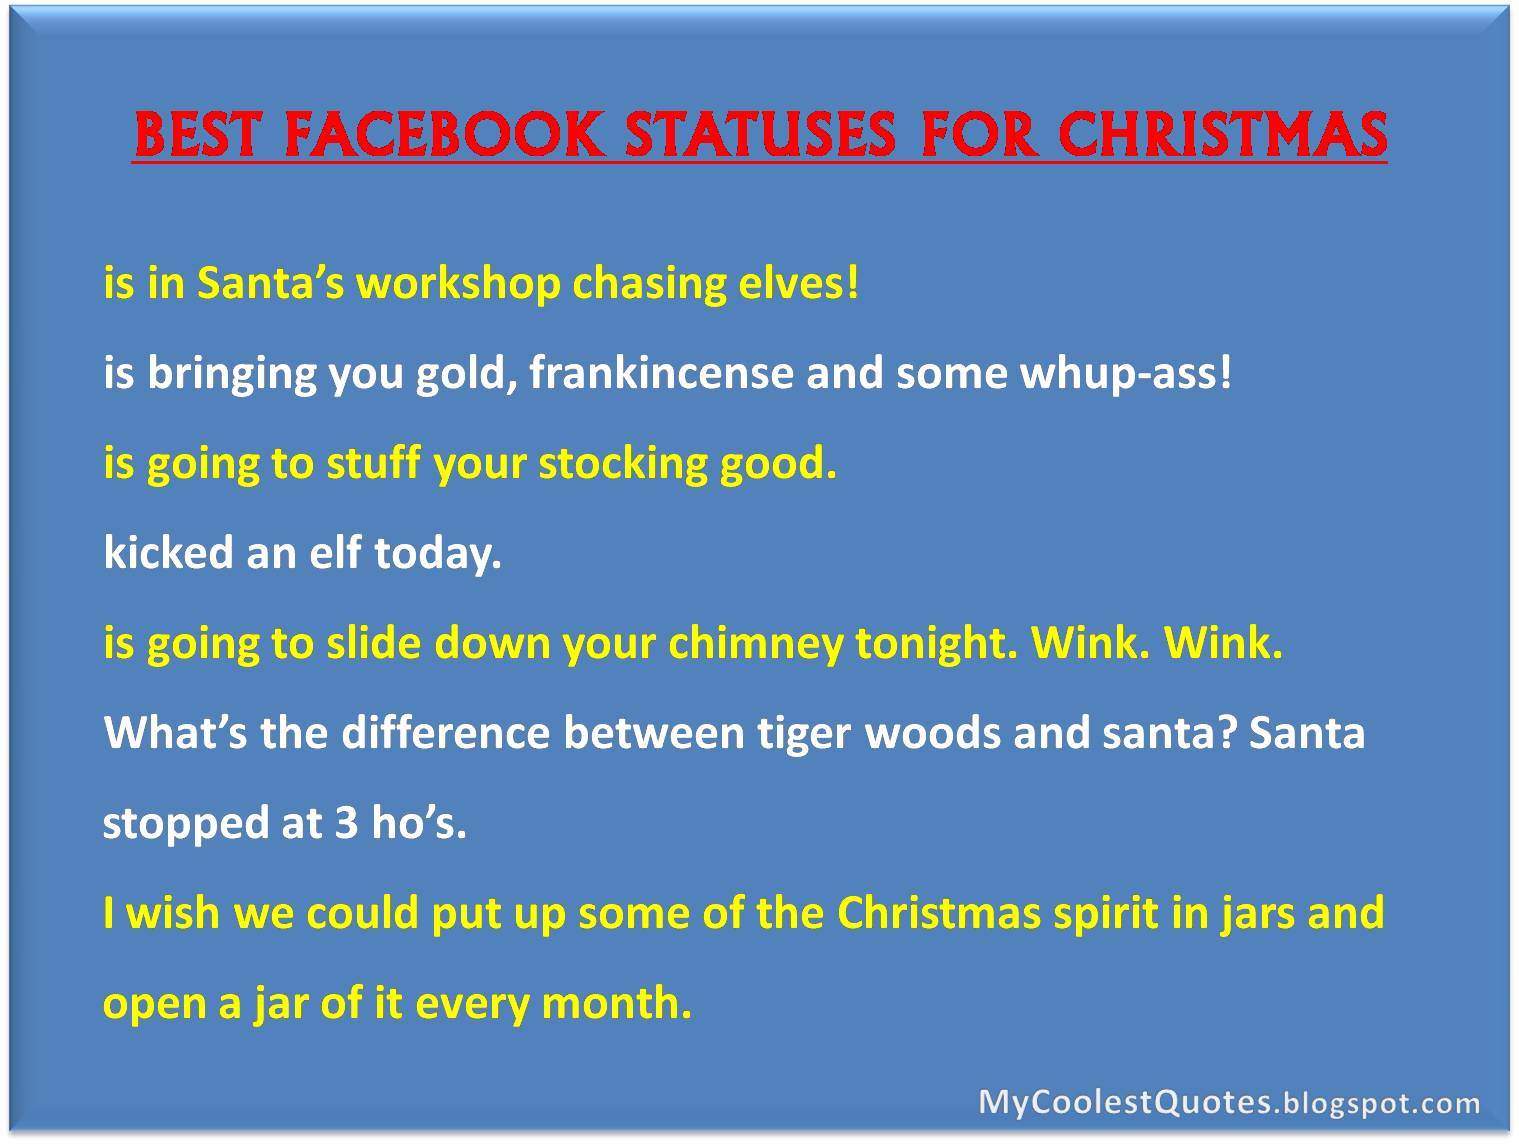 Quotes For Facebook | Best 2BFacebook 2BStatuses 2Bfor 2BChristmas